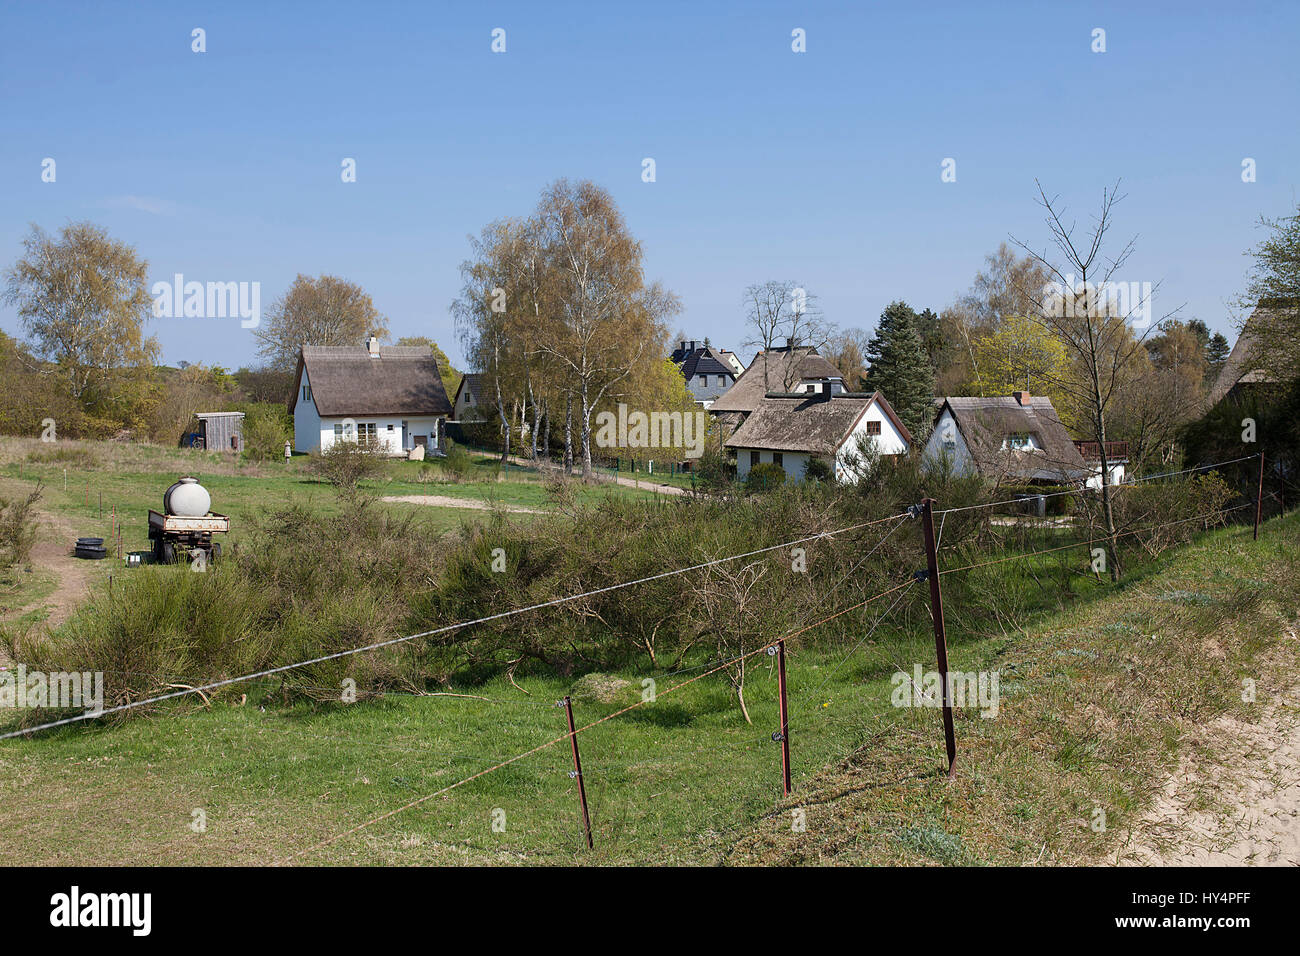 path from Dornbusch (Small Island View) to Kloster - Stock Image